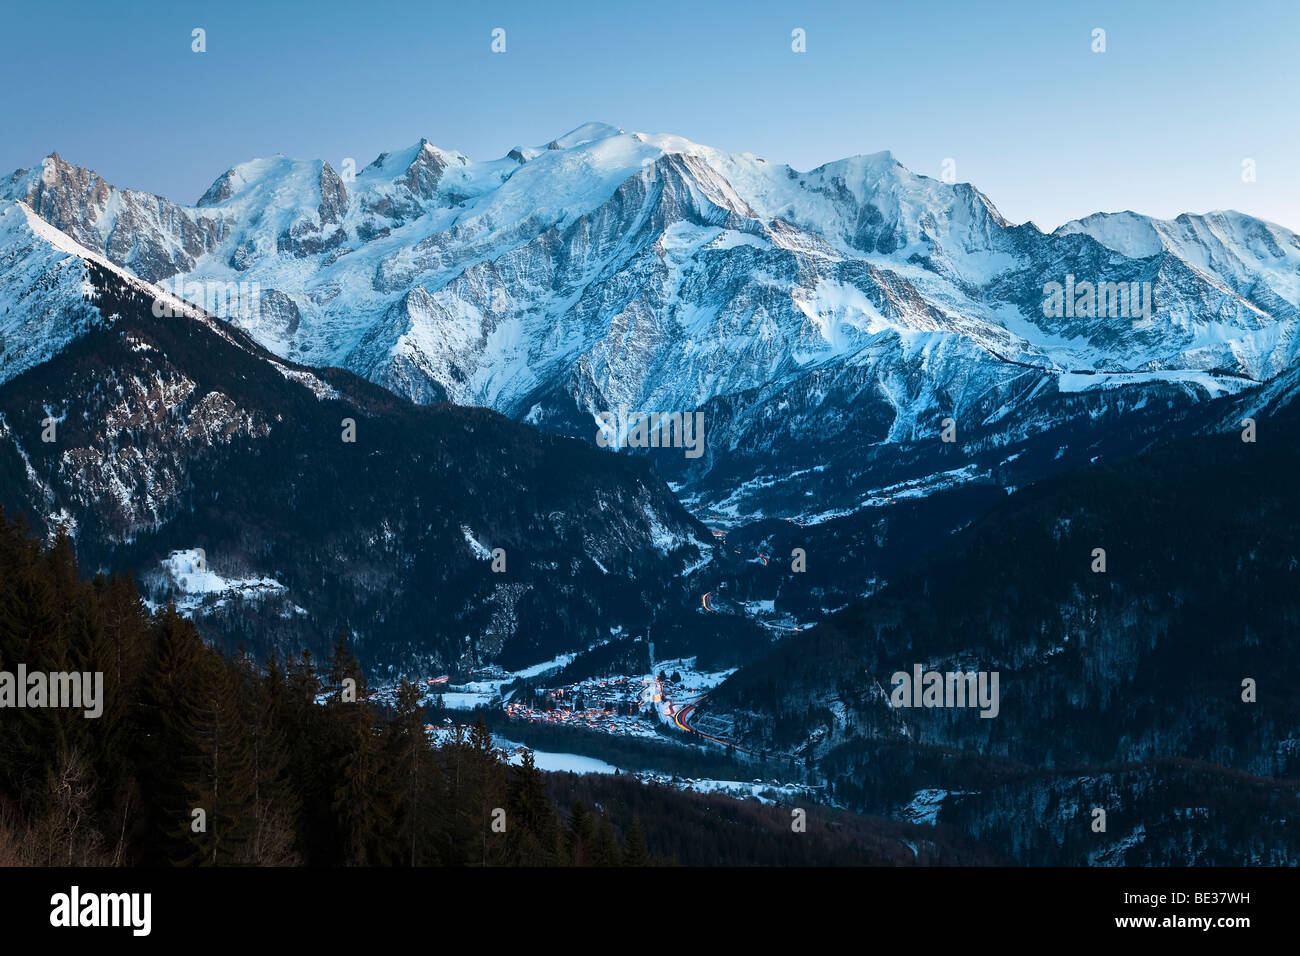 Range stockfotos range bilder alamy for 107 7 haute savoie